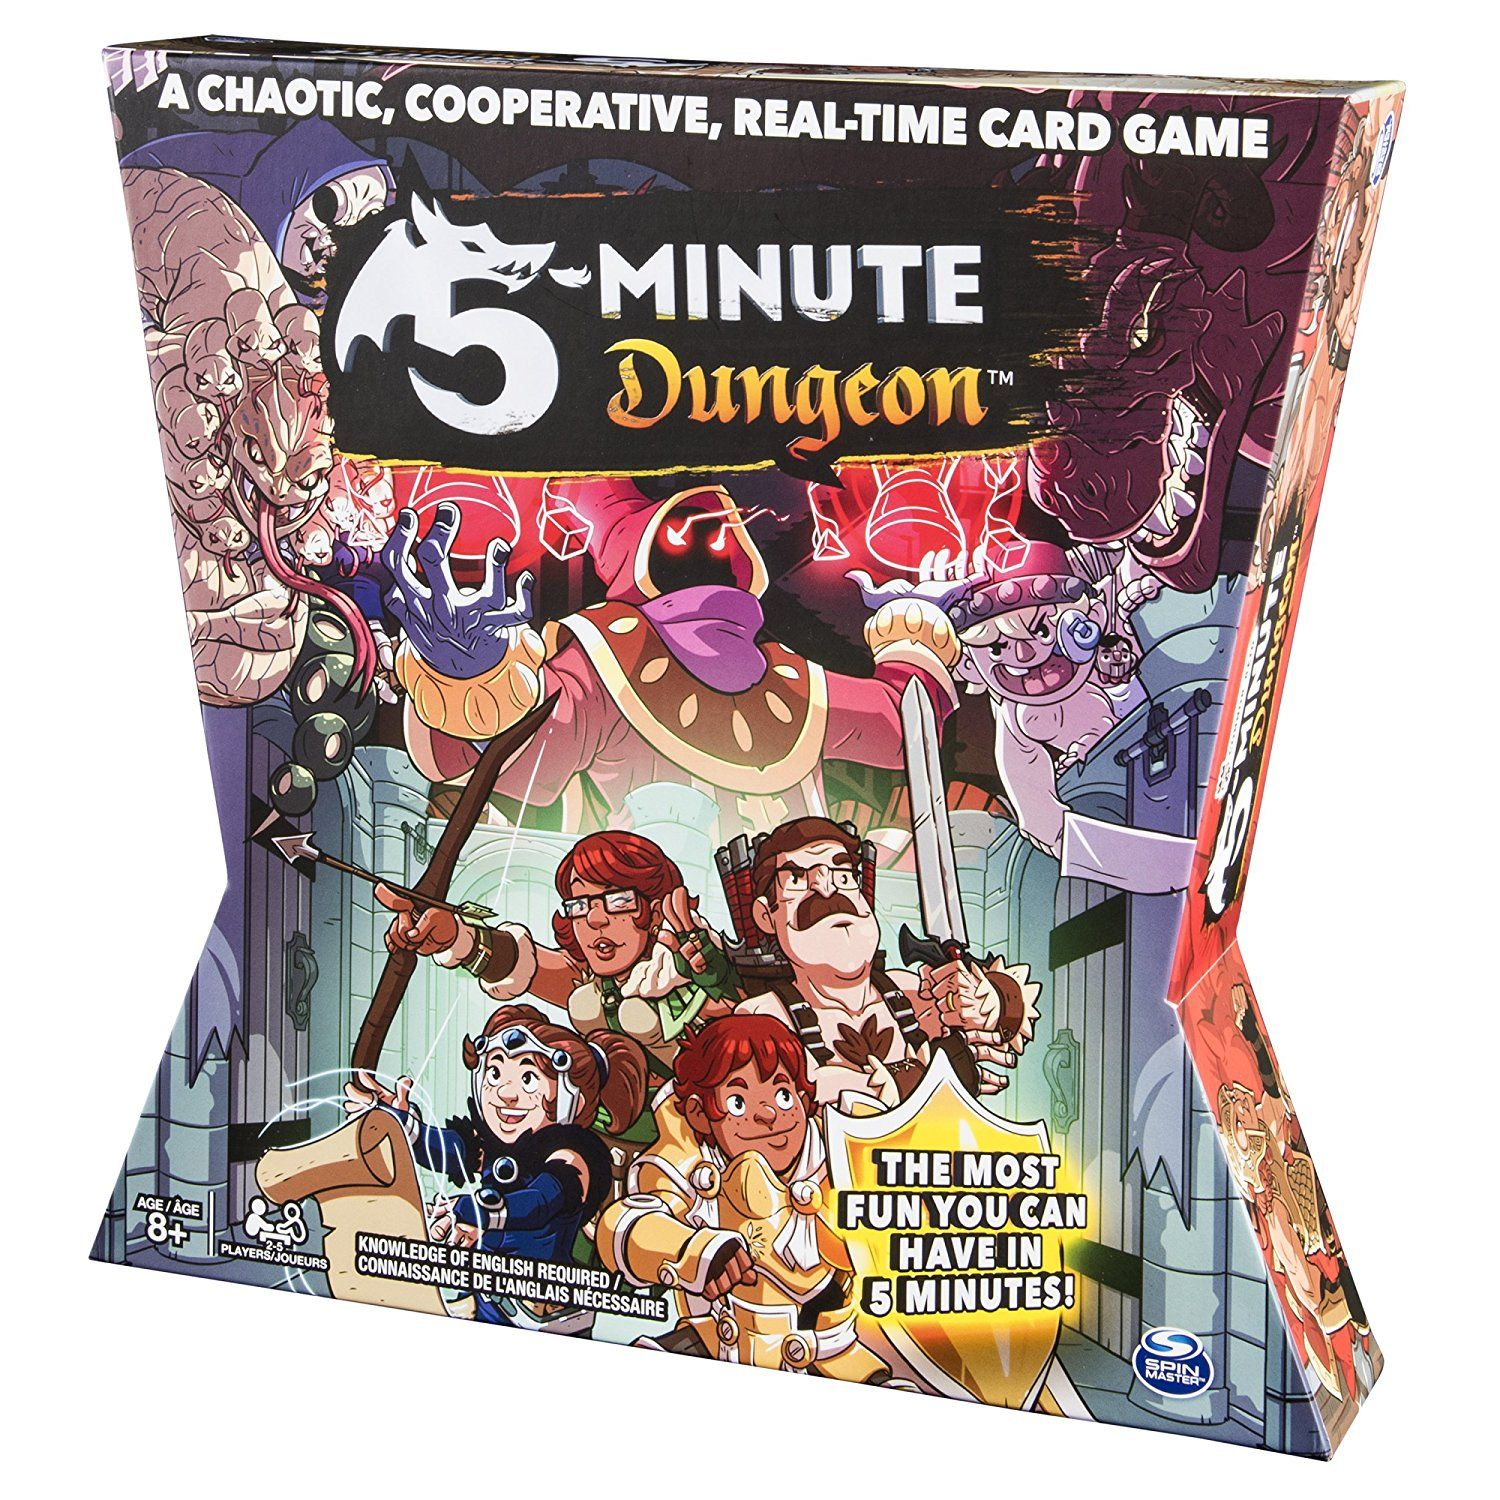 5 Minute Dungeon Fun Card Game for Kids and